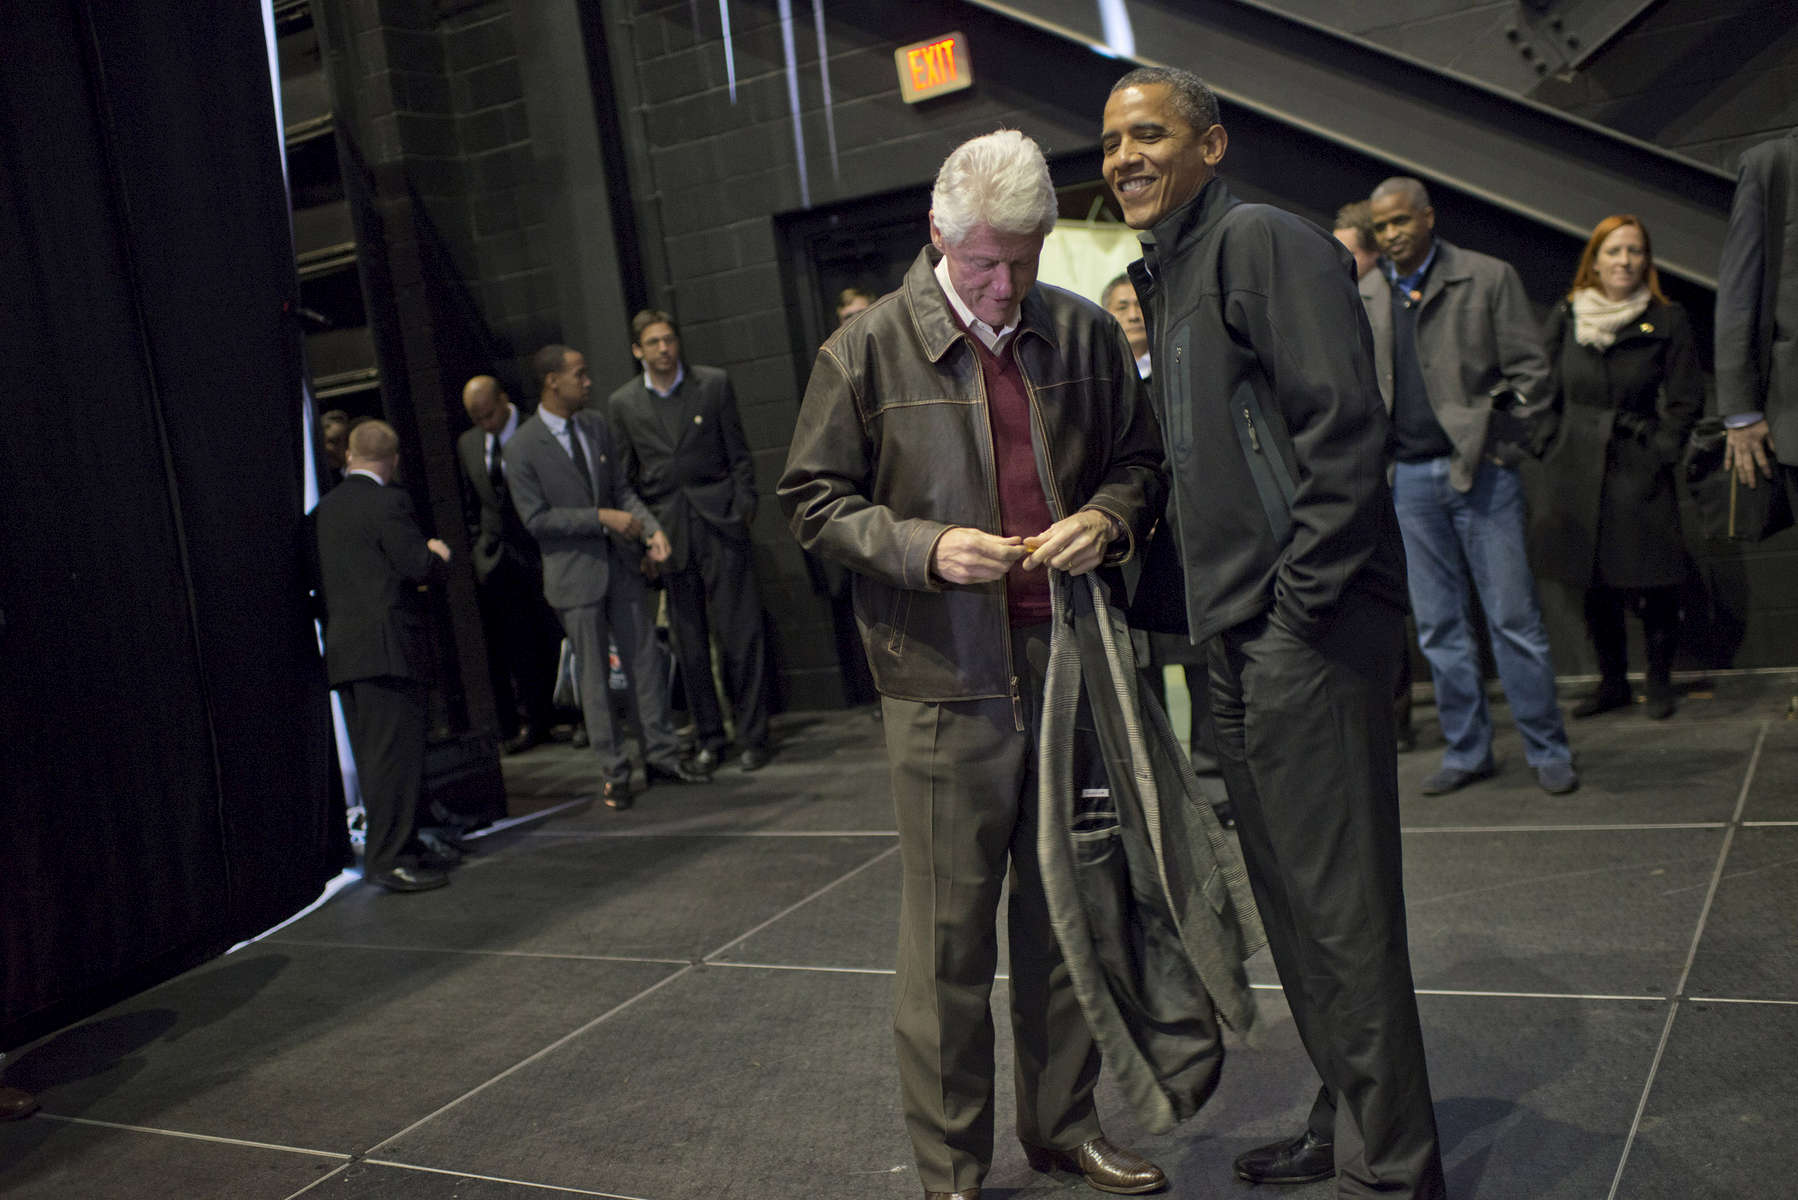 November 3, 2012 - Bristow, VA:  President Barack Obama chats with former President Bill Clinton backstage at a rally in Bristow, VA a few days before the 2012 election. (Scout Tufankjian for Obama for America/Polaris)